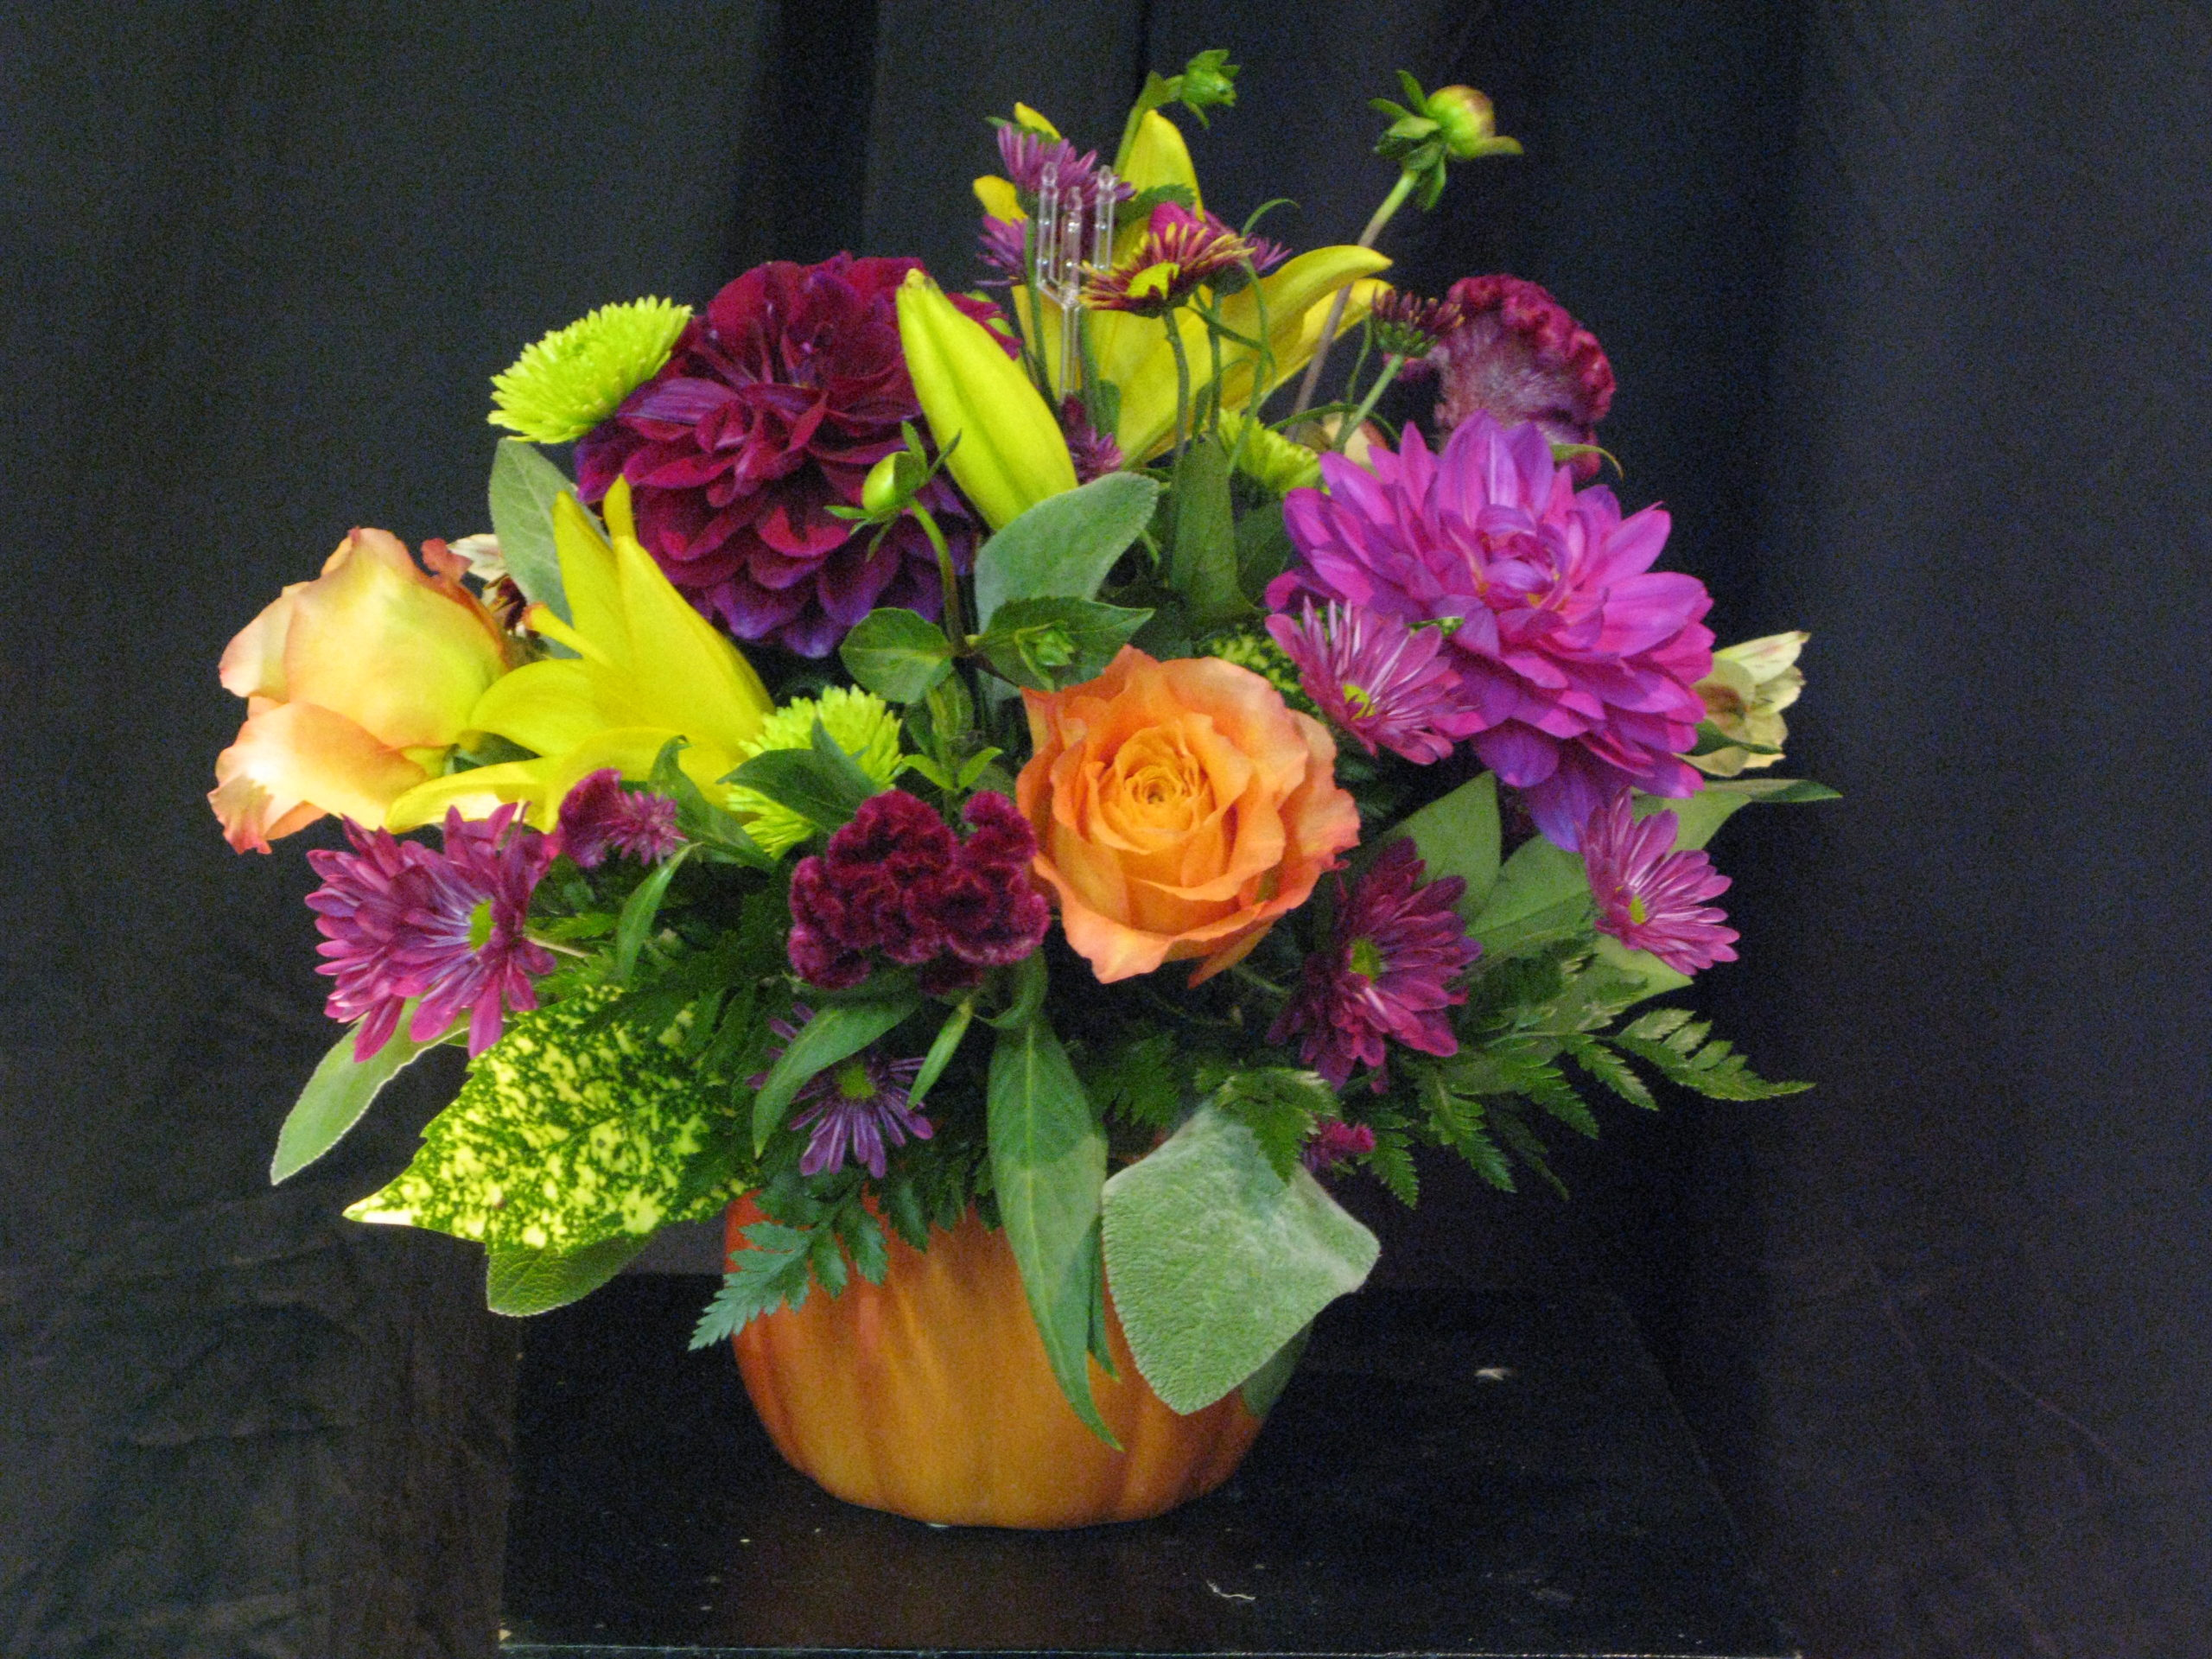 Fall flowers in pumpkin vase with dahlia williamsburg floral this is a seasonal fall floral arrangement with locally grown dahlias orange roses magenta izmirmasajfo